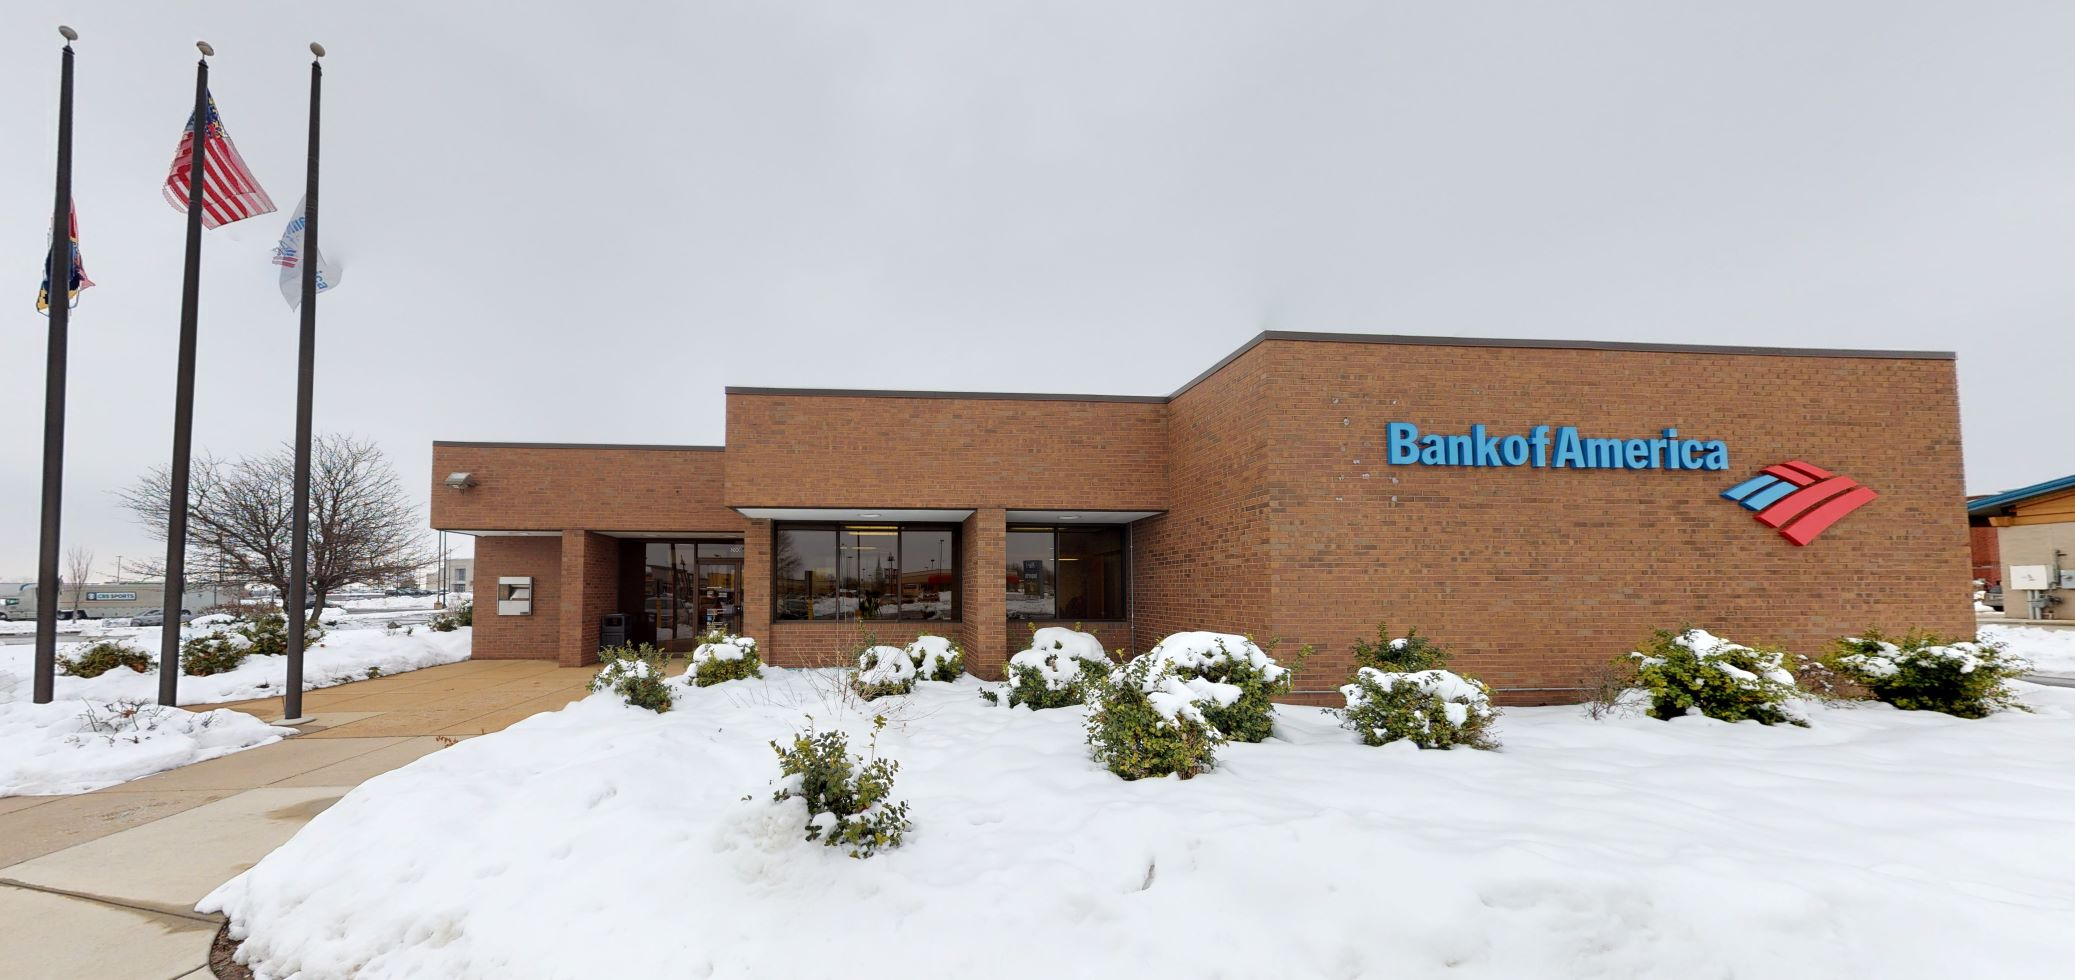 Bank of America financial center with drive-thru ATM   200 Mid Rivers Mall Cir, Saint Peters, MO 63376